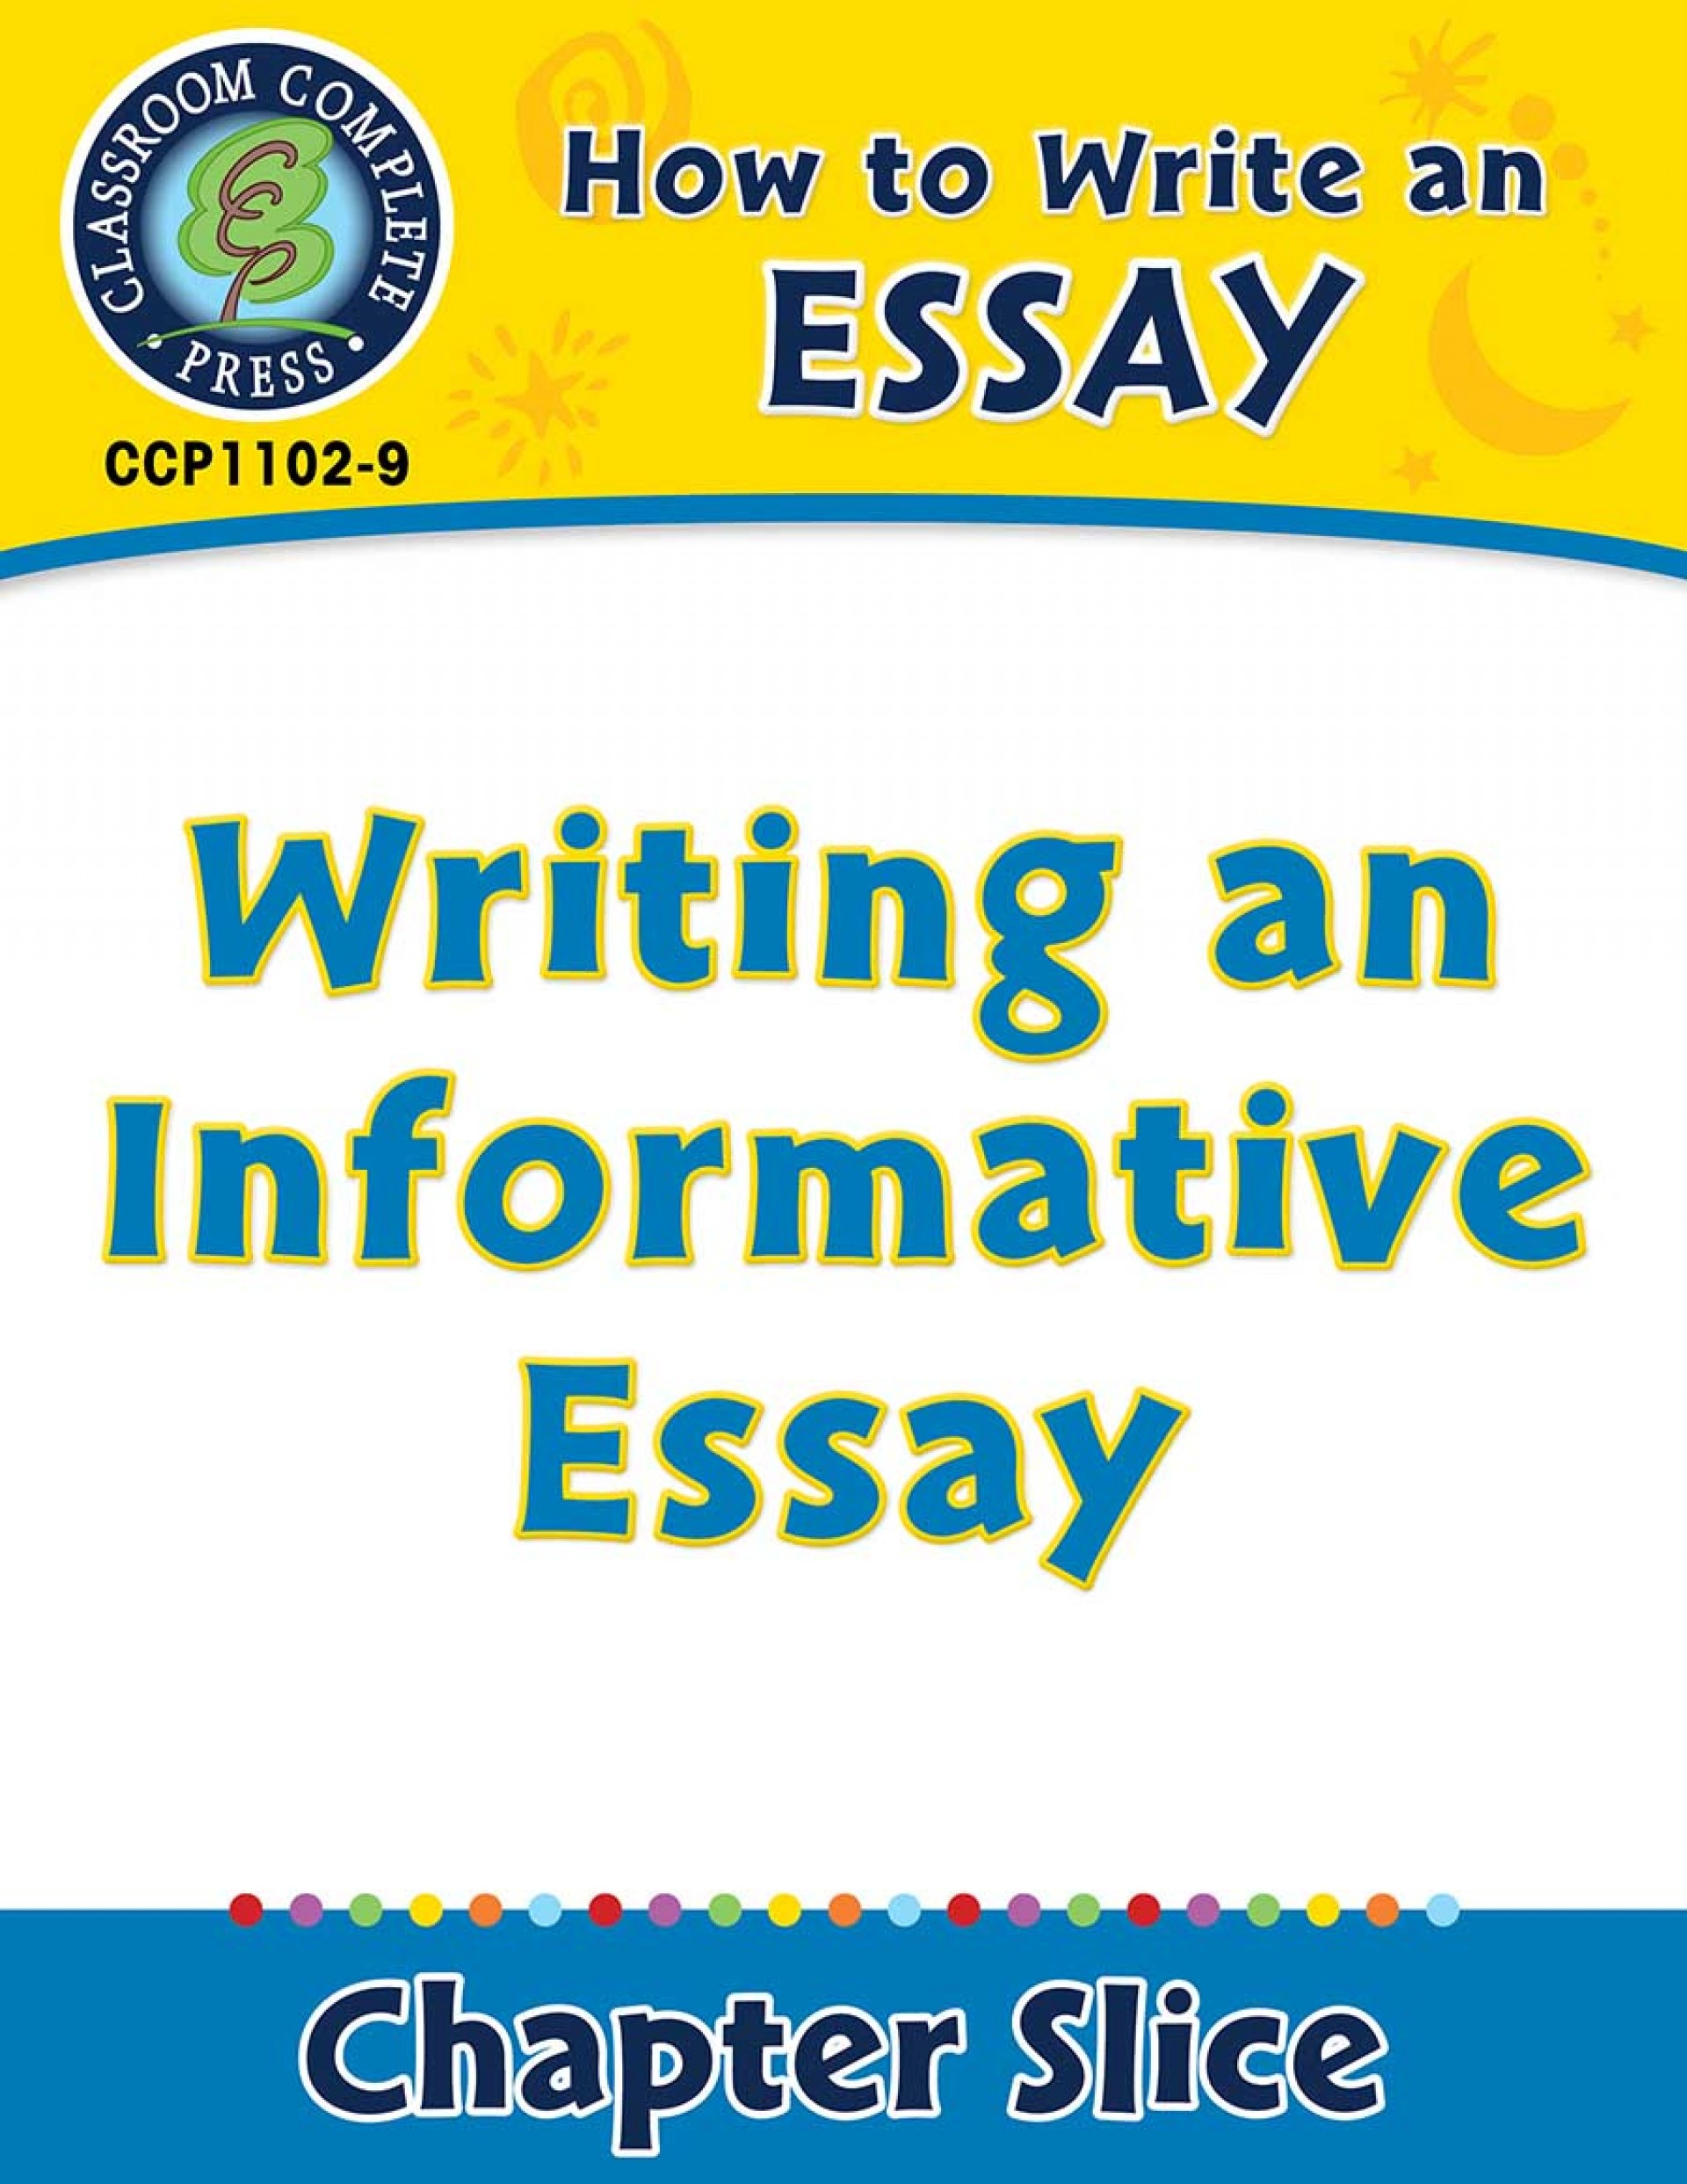 026 Essay Example Writing An Informative Ccp1102 9 Cover Sensational About The Immigrant Experience Ppt Introduction 1920